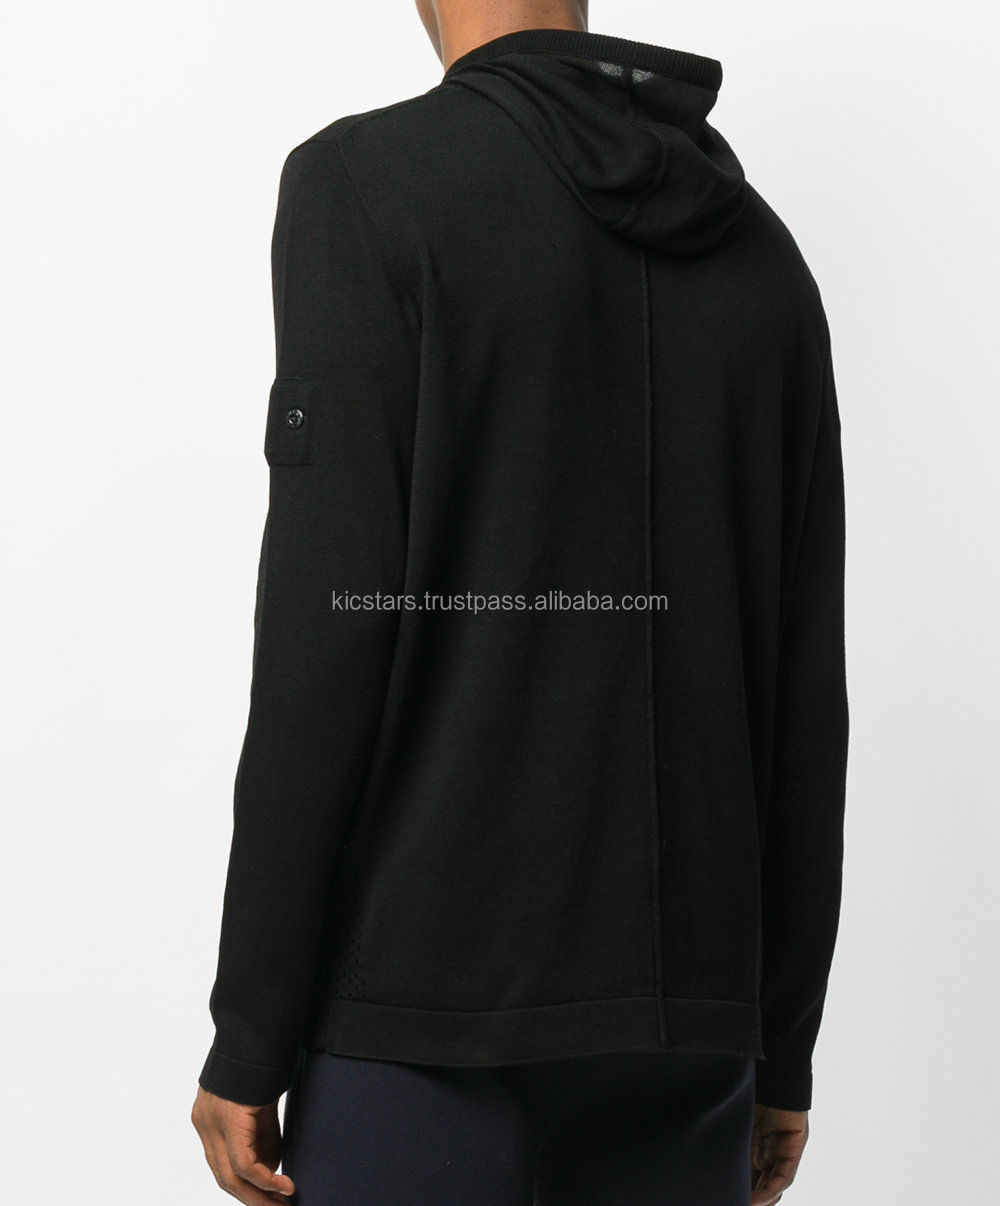 Best Export Black Pullover Fleece Drawstring Fashion Hoodie With Perforated Mesh for Men 2018